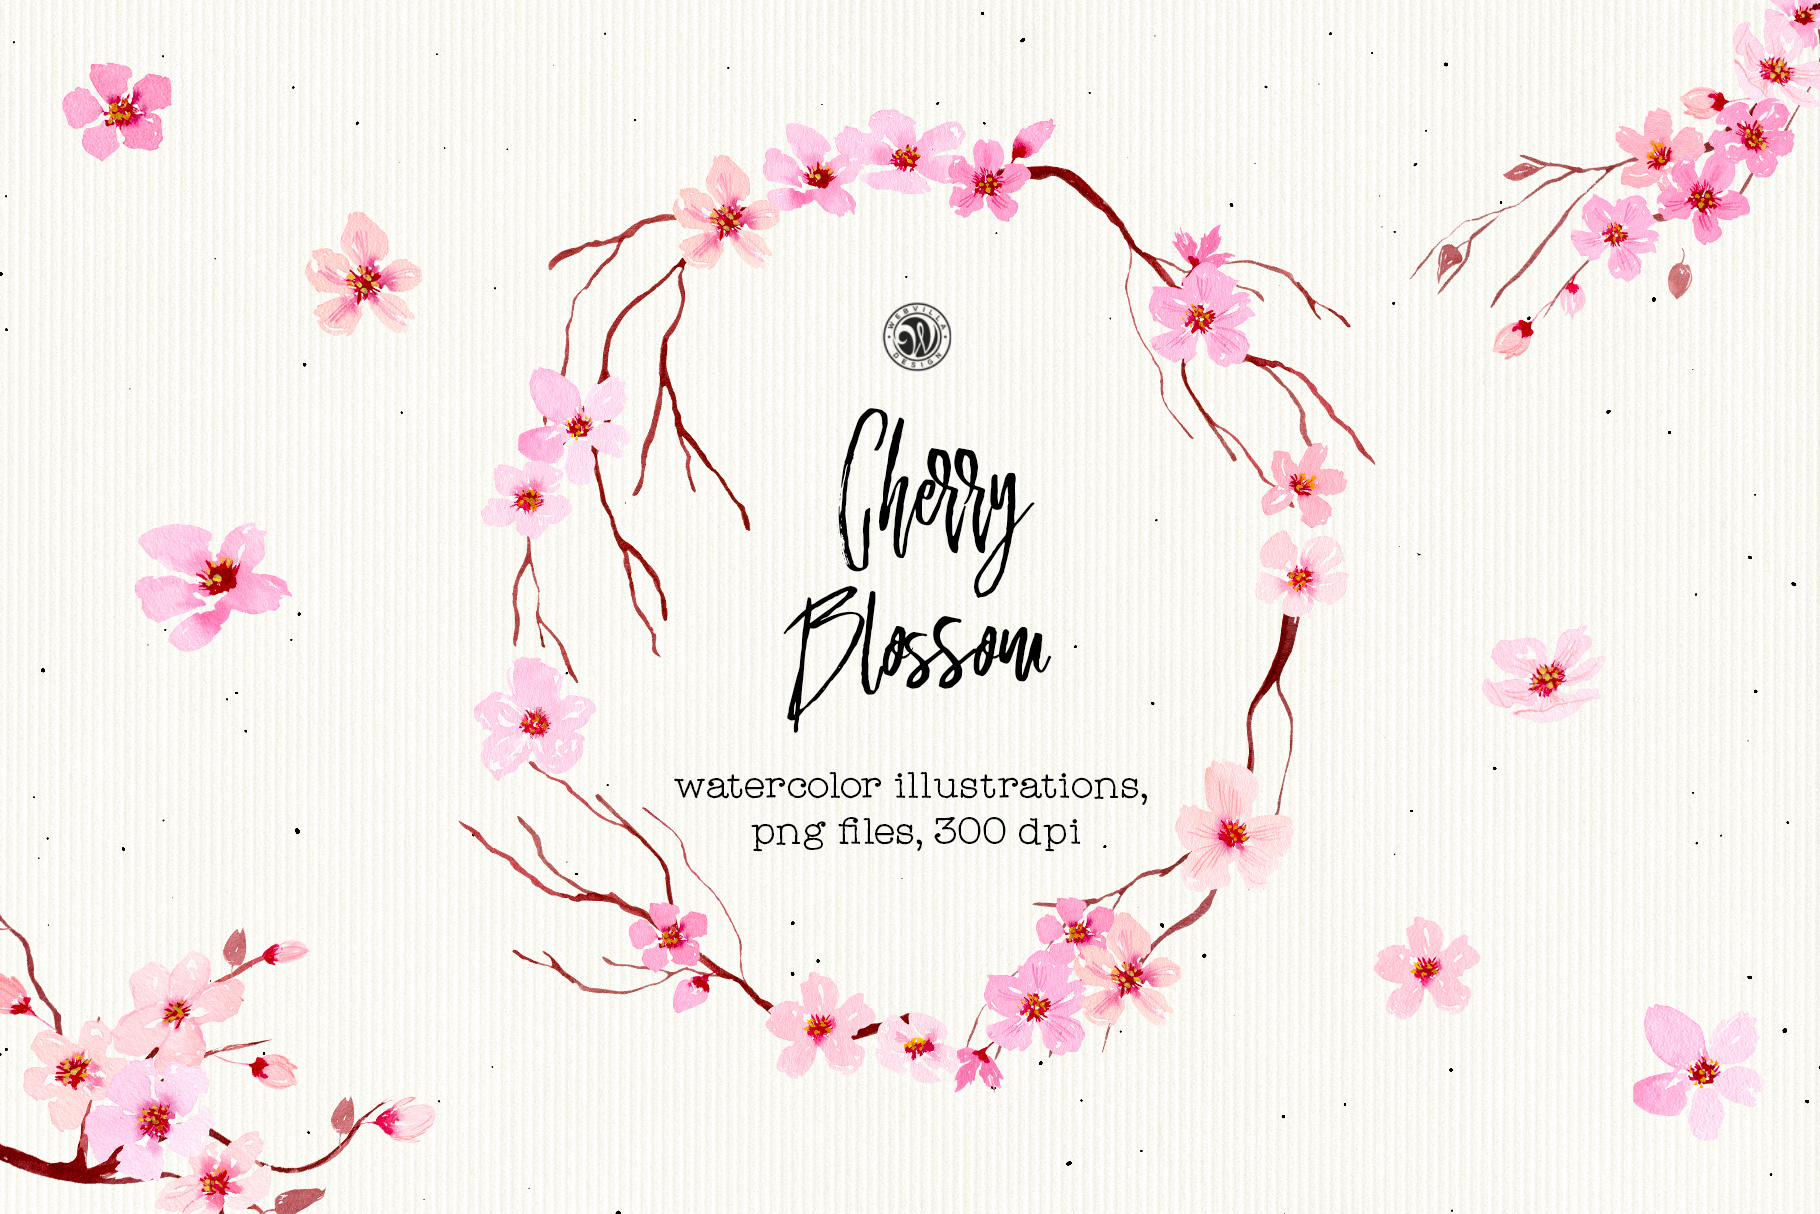 Cherry Blossom - Price $14